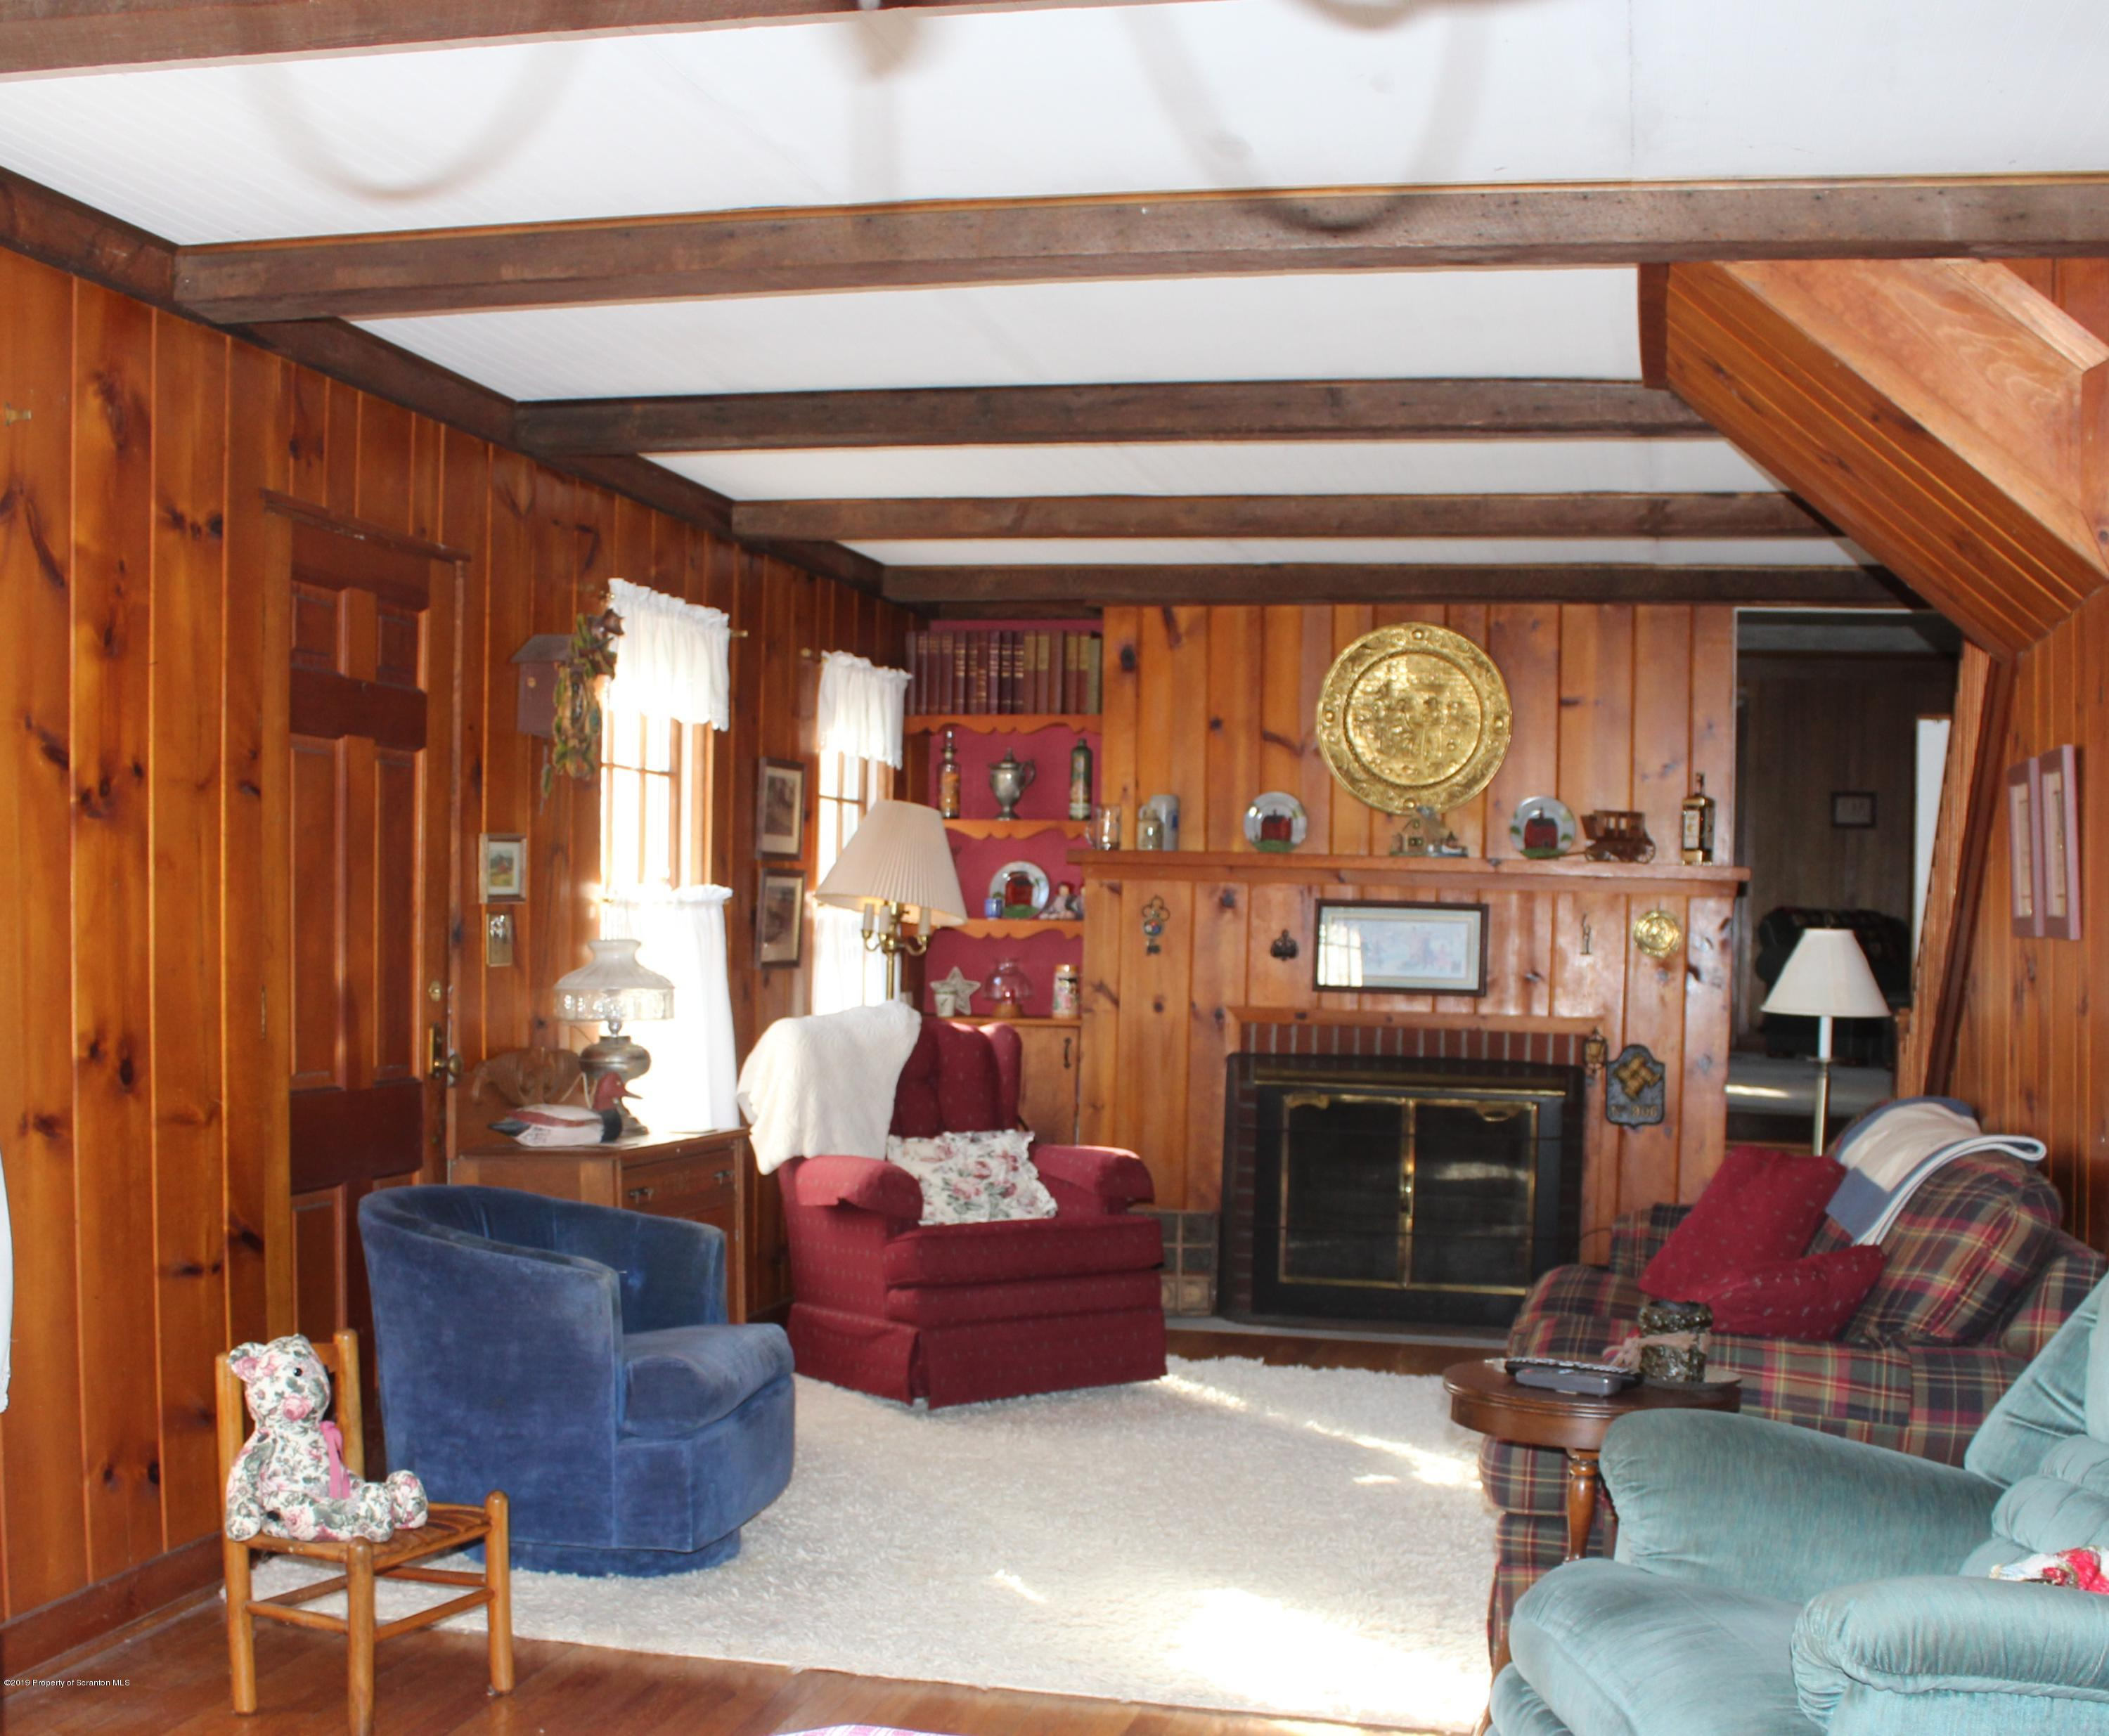 2457 Airport Rd, Clifford Twp, Pennsylvania 18421, 5 Bedrooms Bedrooms, 9 Rooms Rooms,3 BathroomsBathrooms,Single Family,For Sale,Airport,19-532